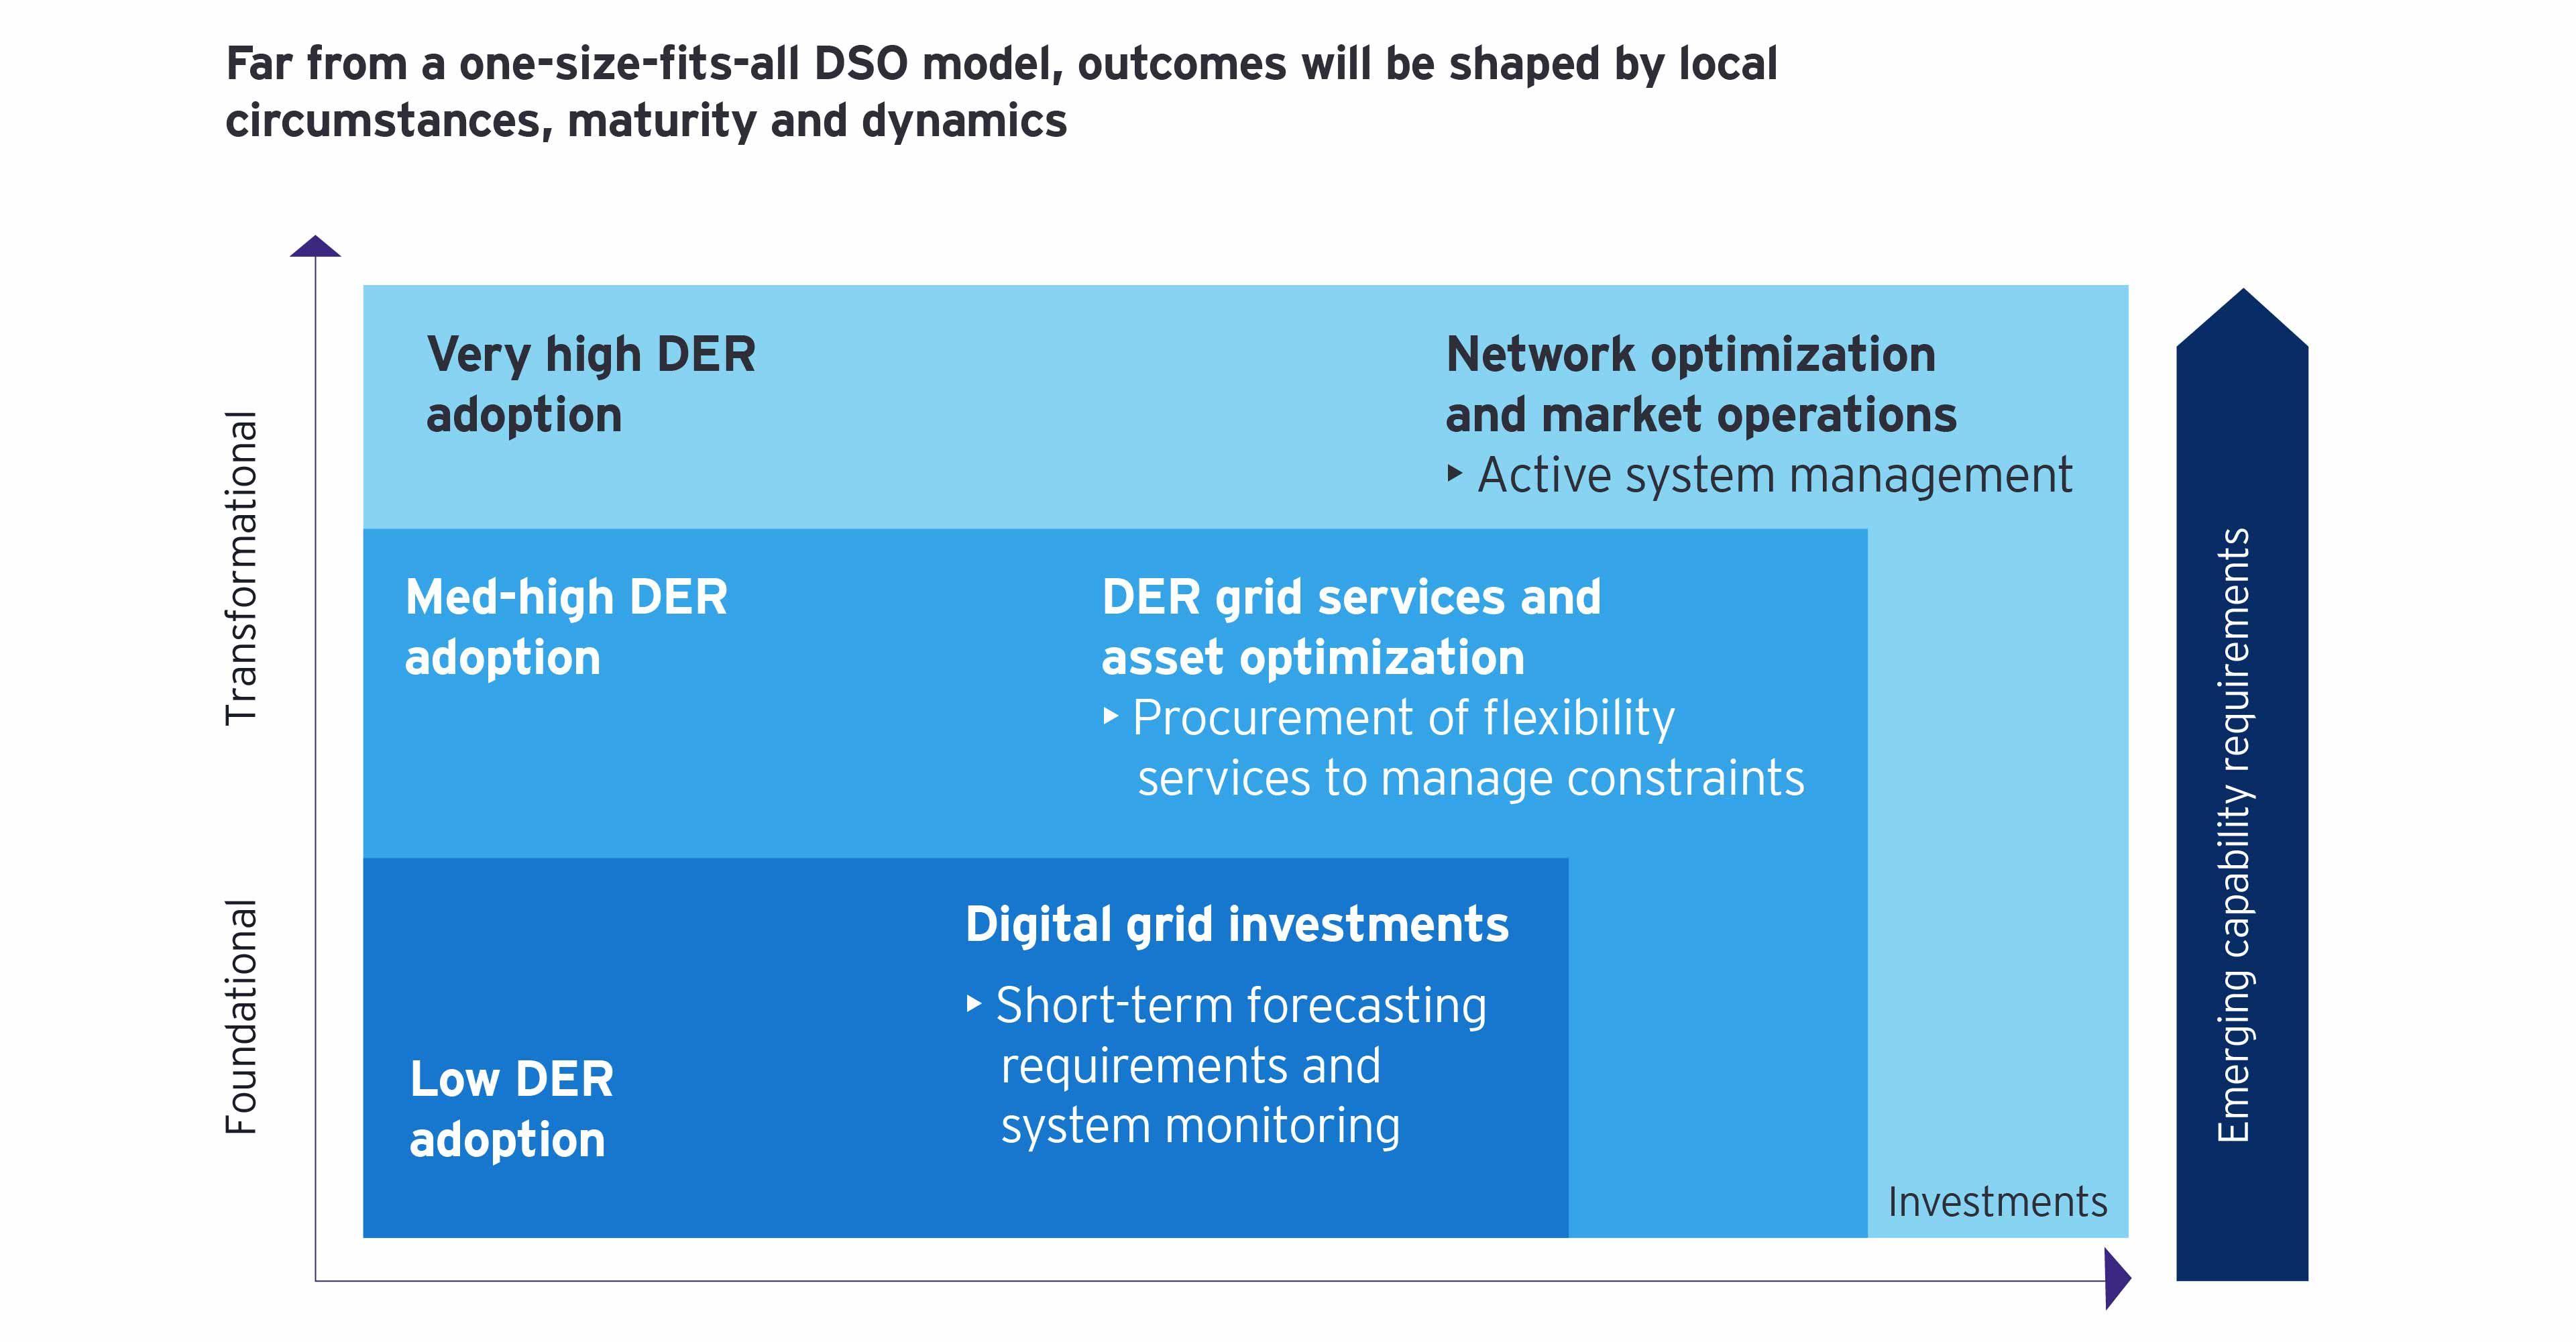 Far from a one-size-fits-all DSO model